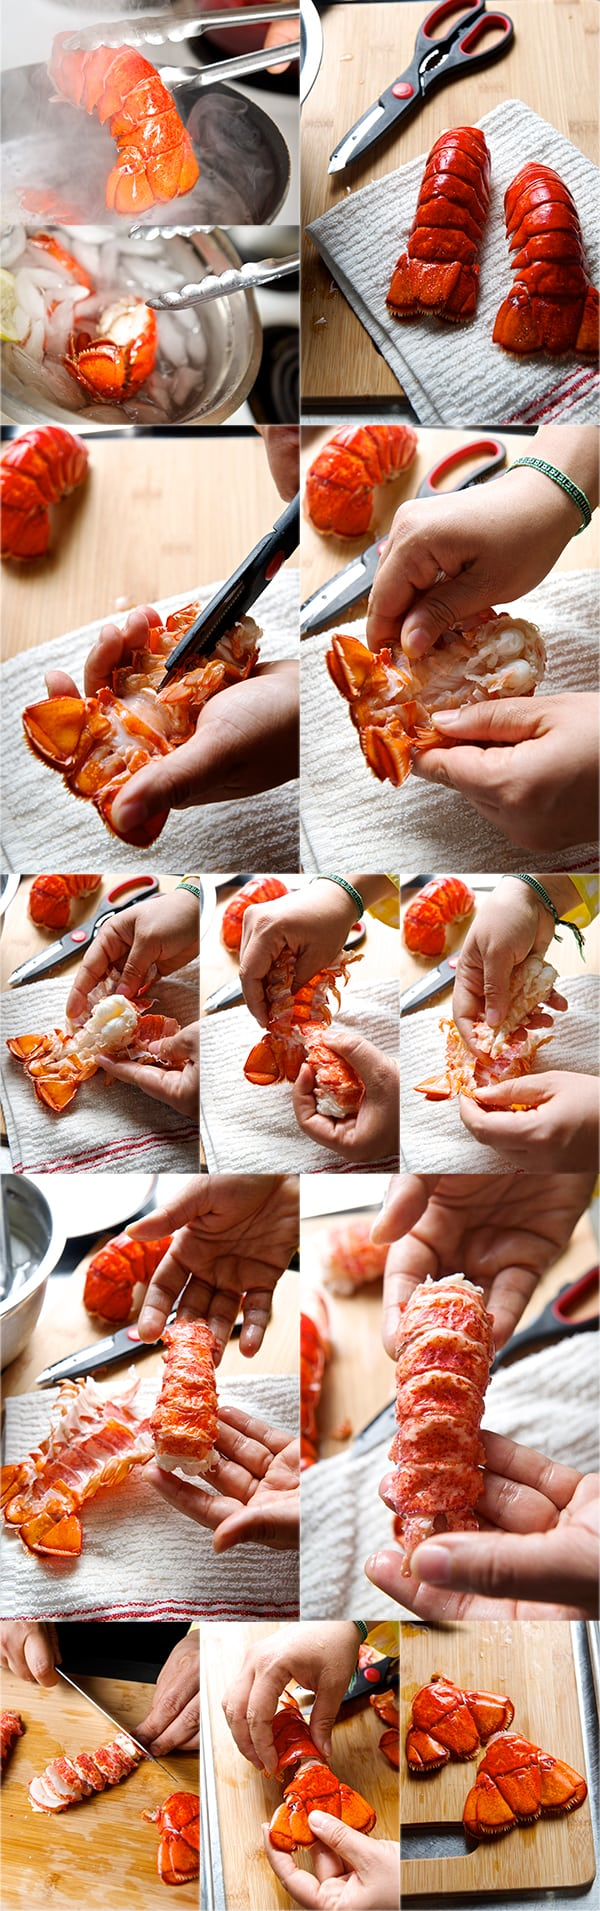 LOBSTER-secuence ~ www.yes-moreplease.com